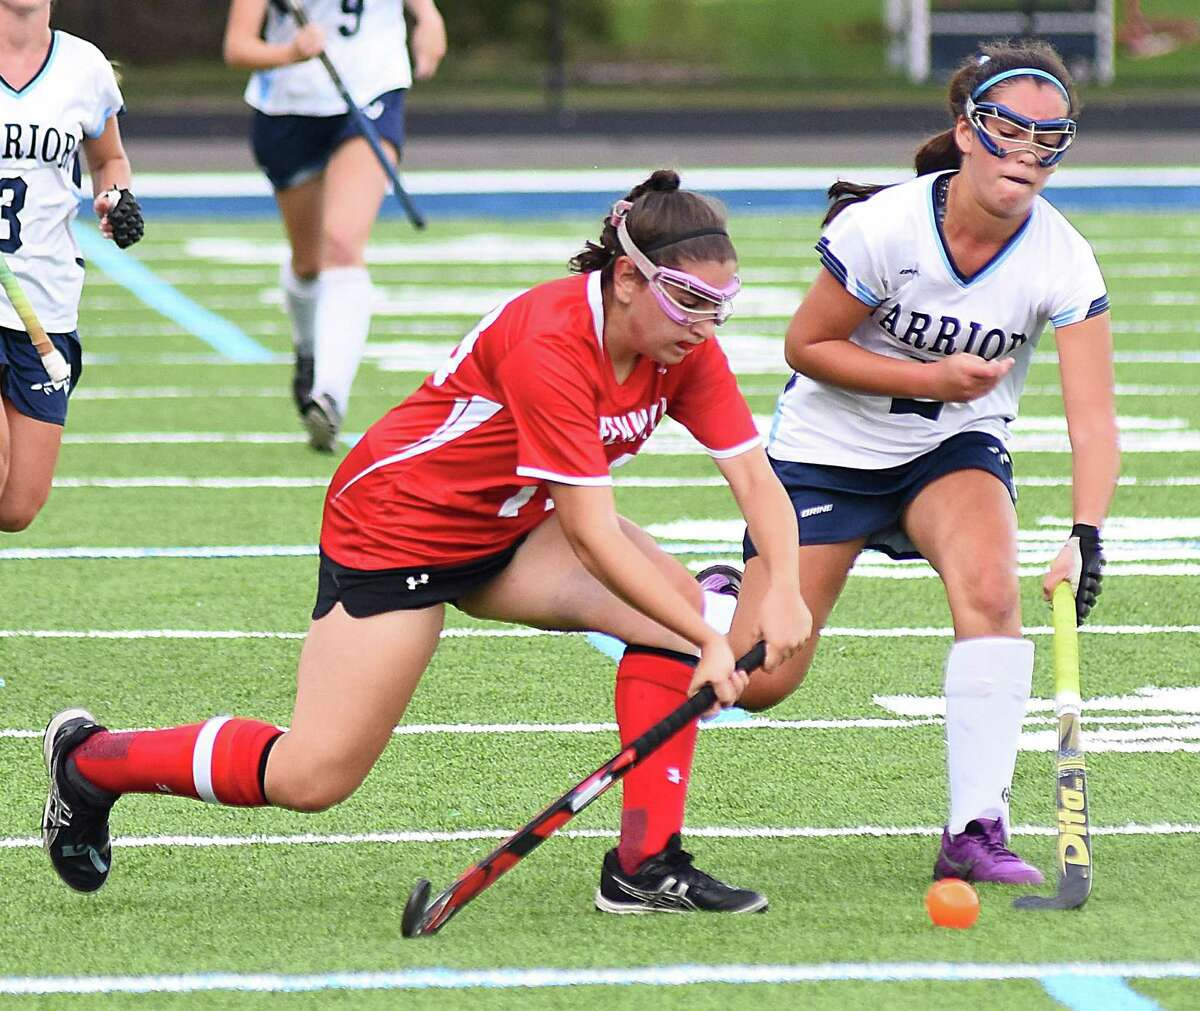 Wiltom's Emma Rothkopf, right, defends as Claudia Bonaparte of Greenwich makes a pass during Tuesday's FCIAC field hockey game at Fujitani Field in Wilton. The host Warriors defeated the Cardinals 4-1.